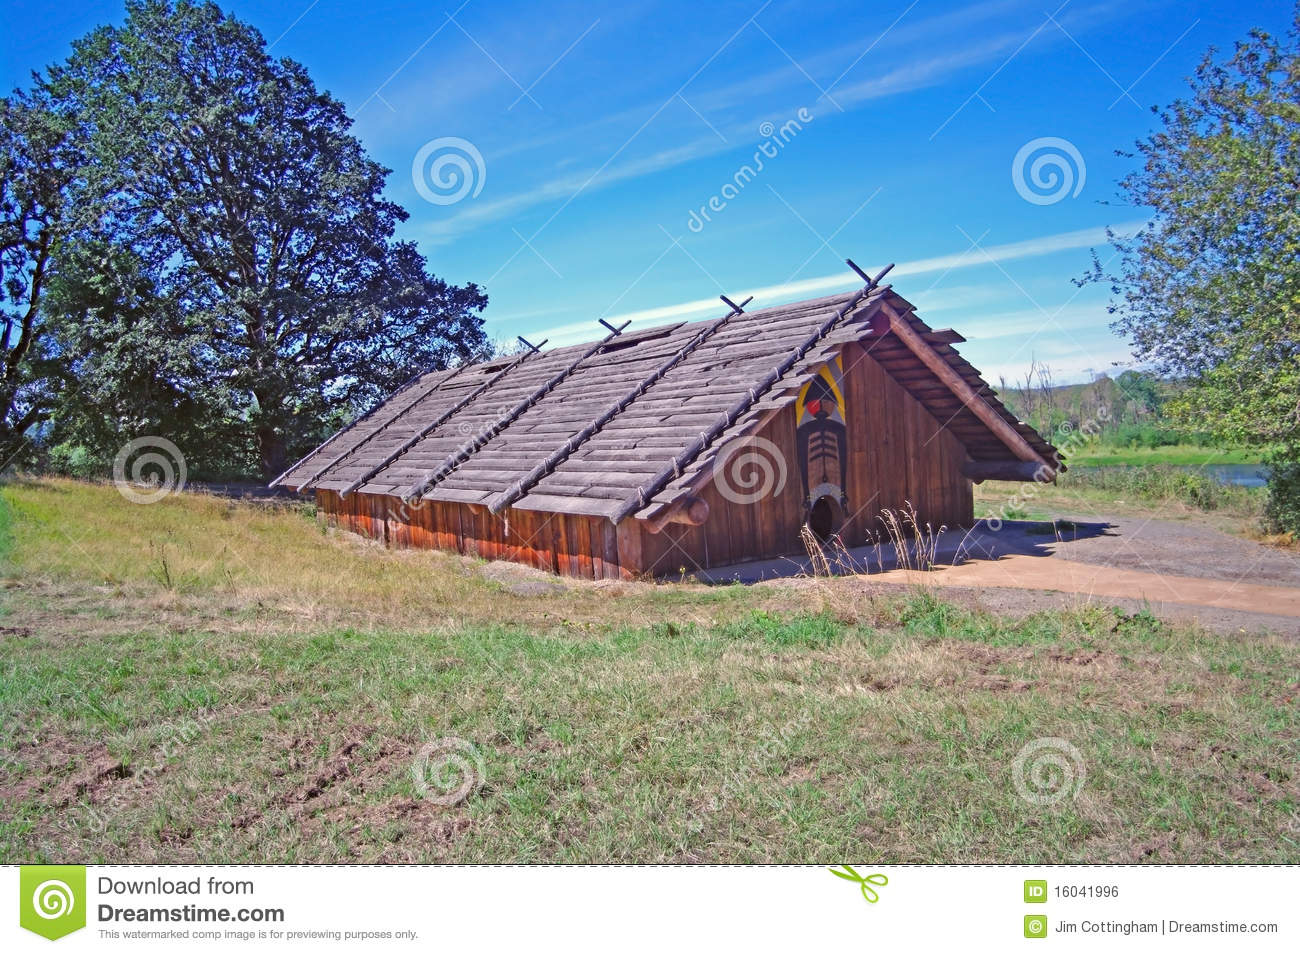 Chinook Indian Cedar Plankhouse Royalty Free Stock Image - Image ...